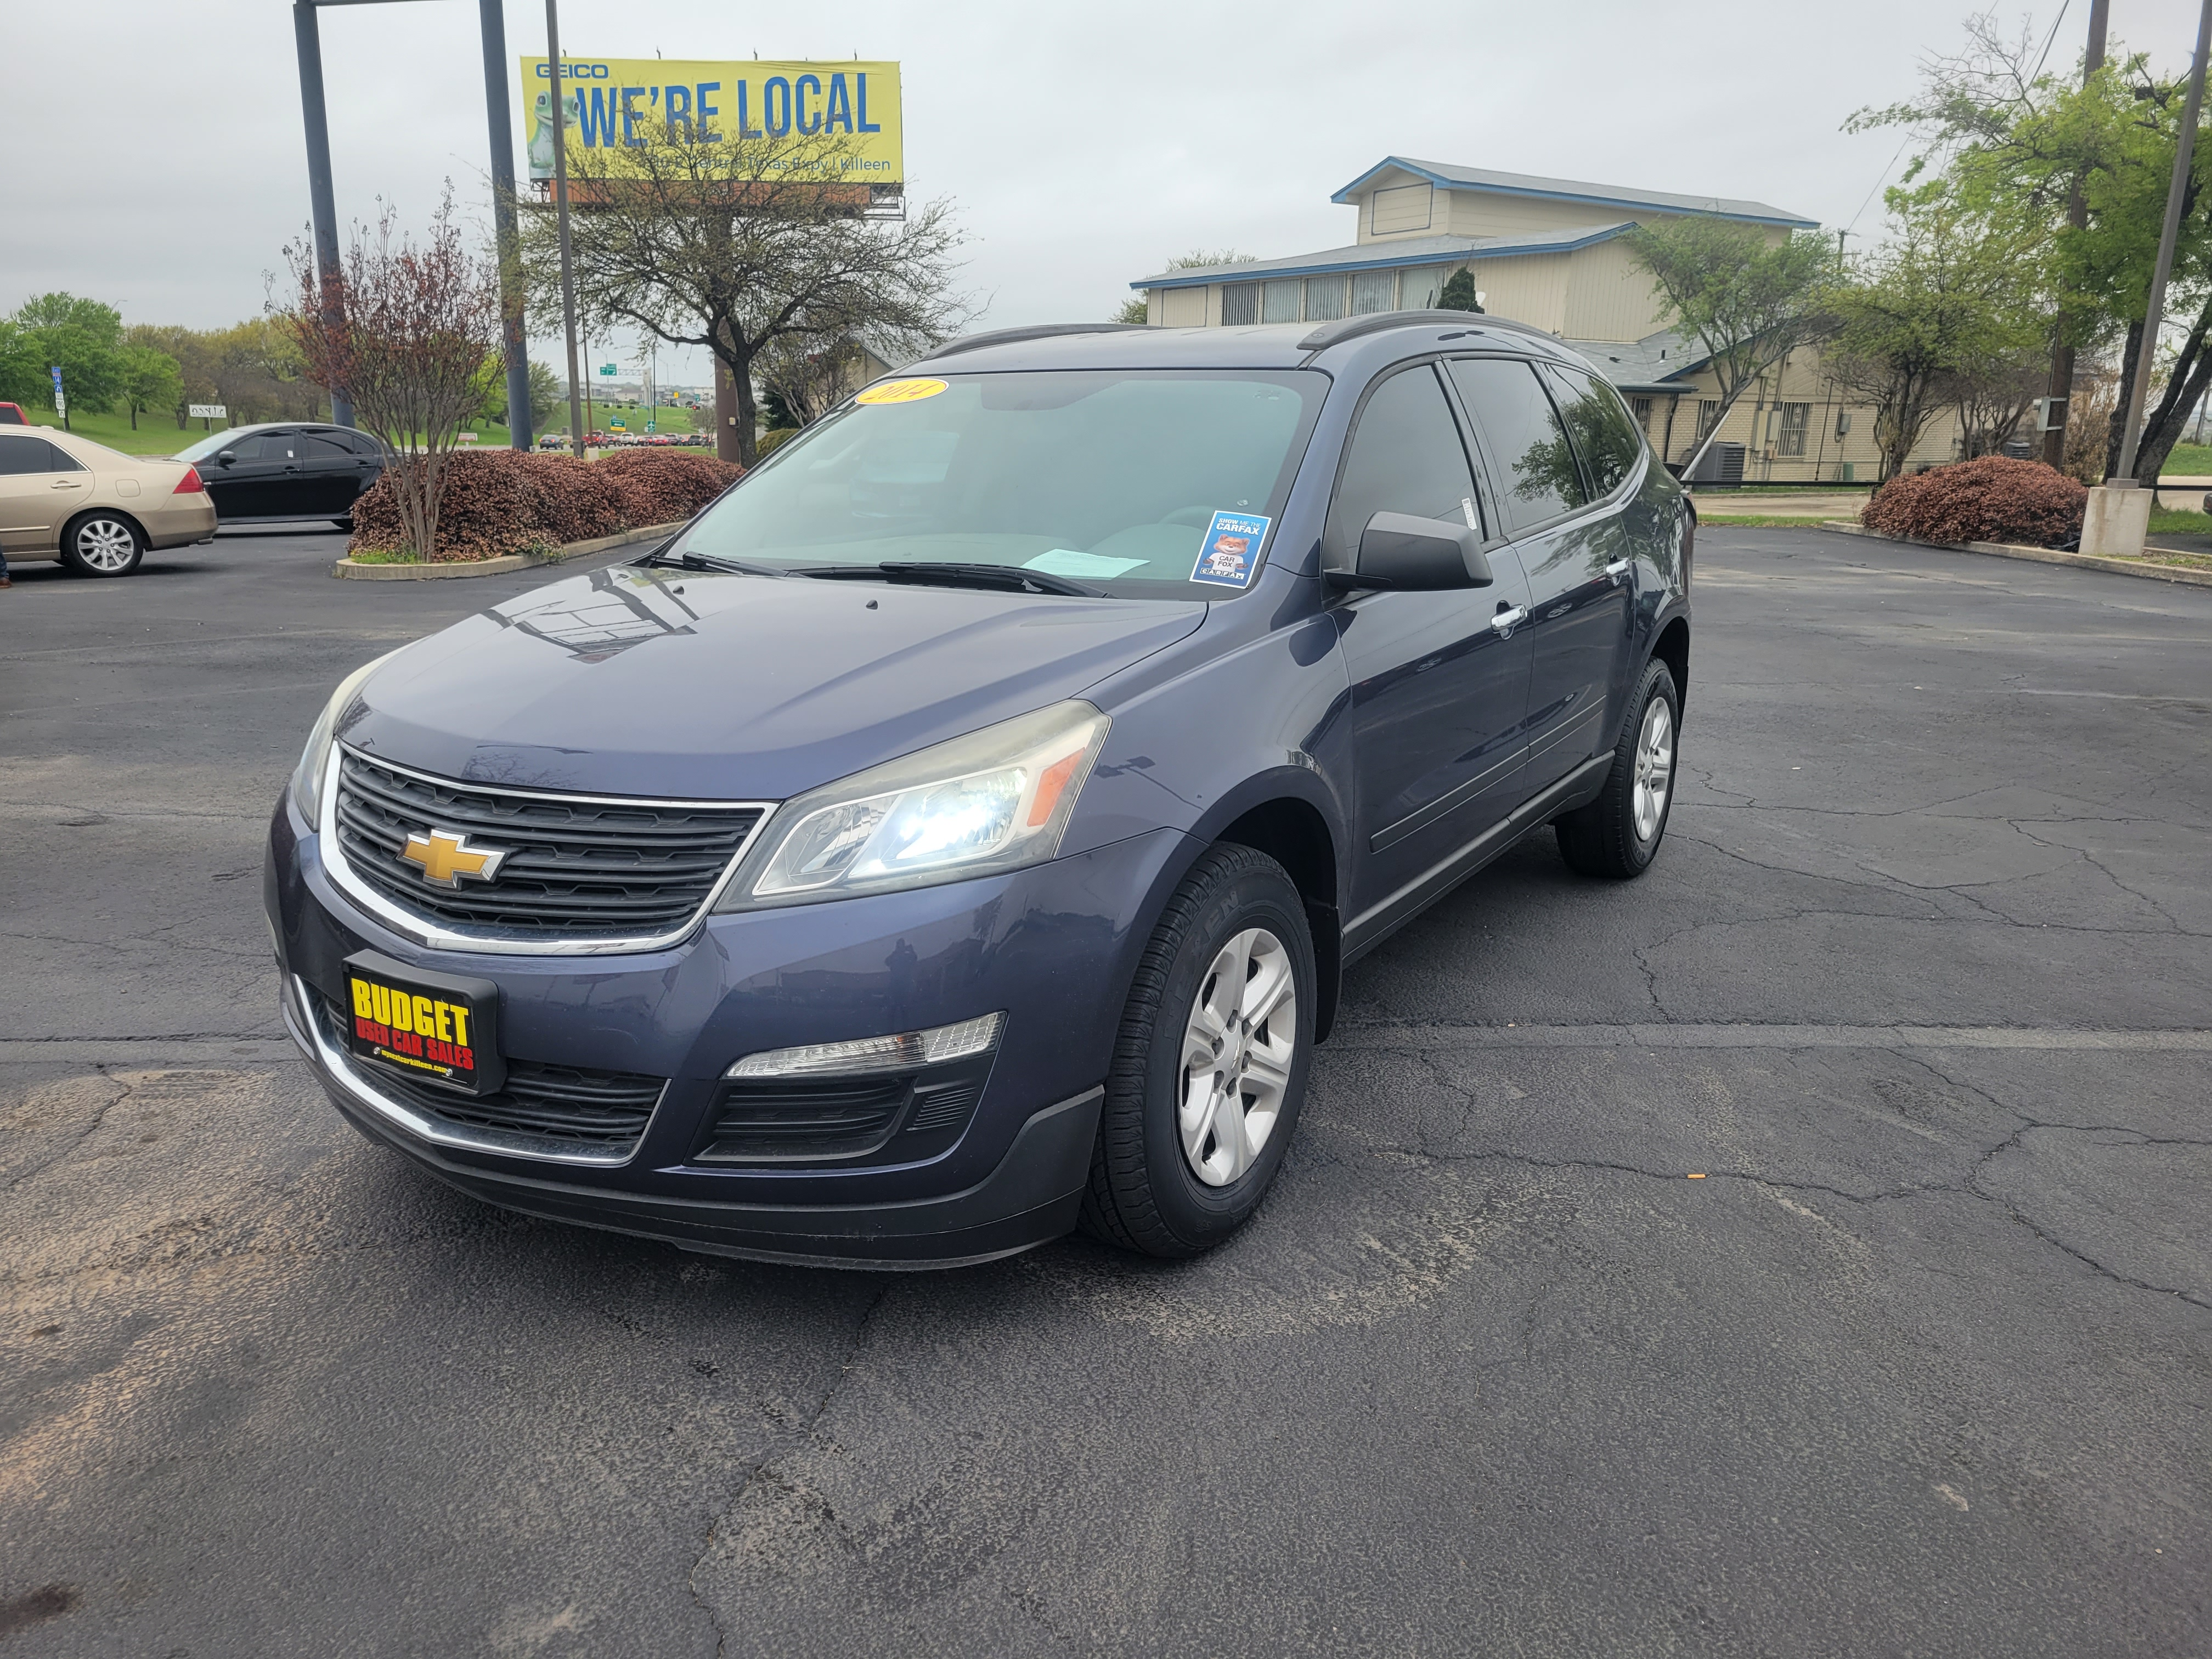 used vehicle - SUV CHEVROLET TRAVERSE 2014